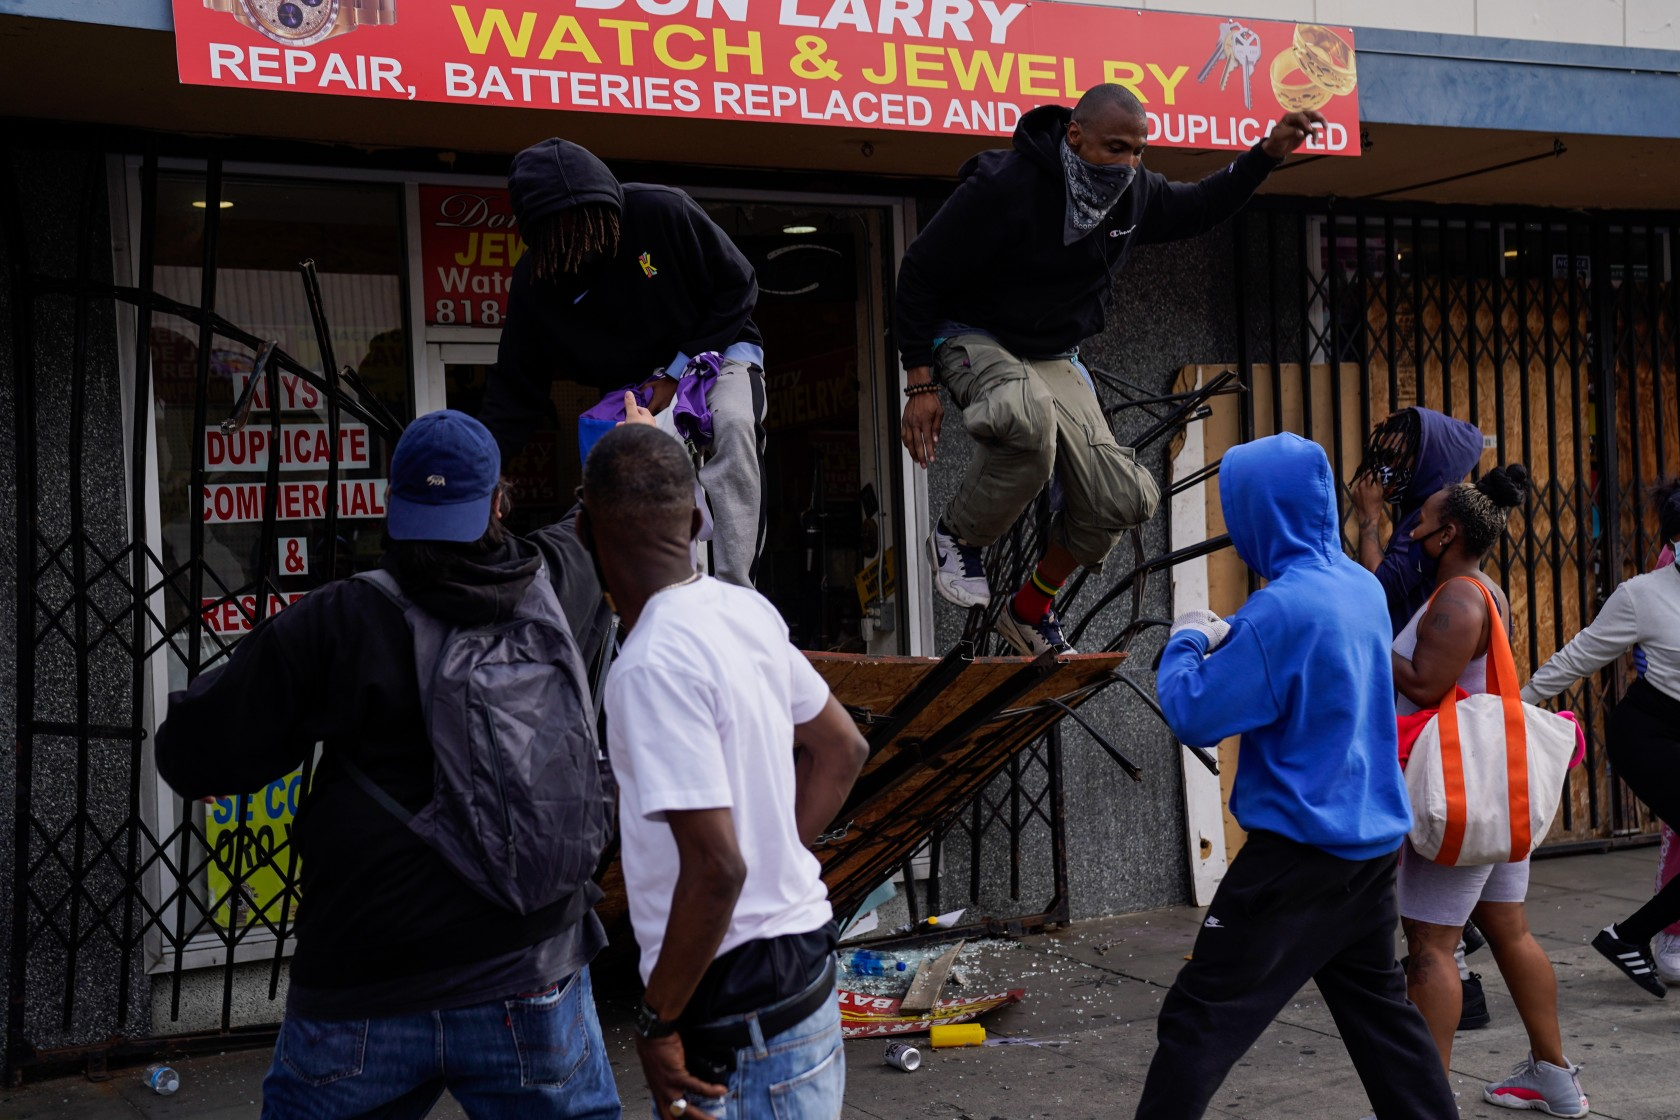 Black Business Owner LOSES IT After Criminal Looters Destroy His Business During Riot! [VIDEO]